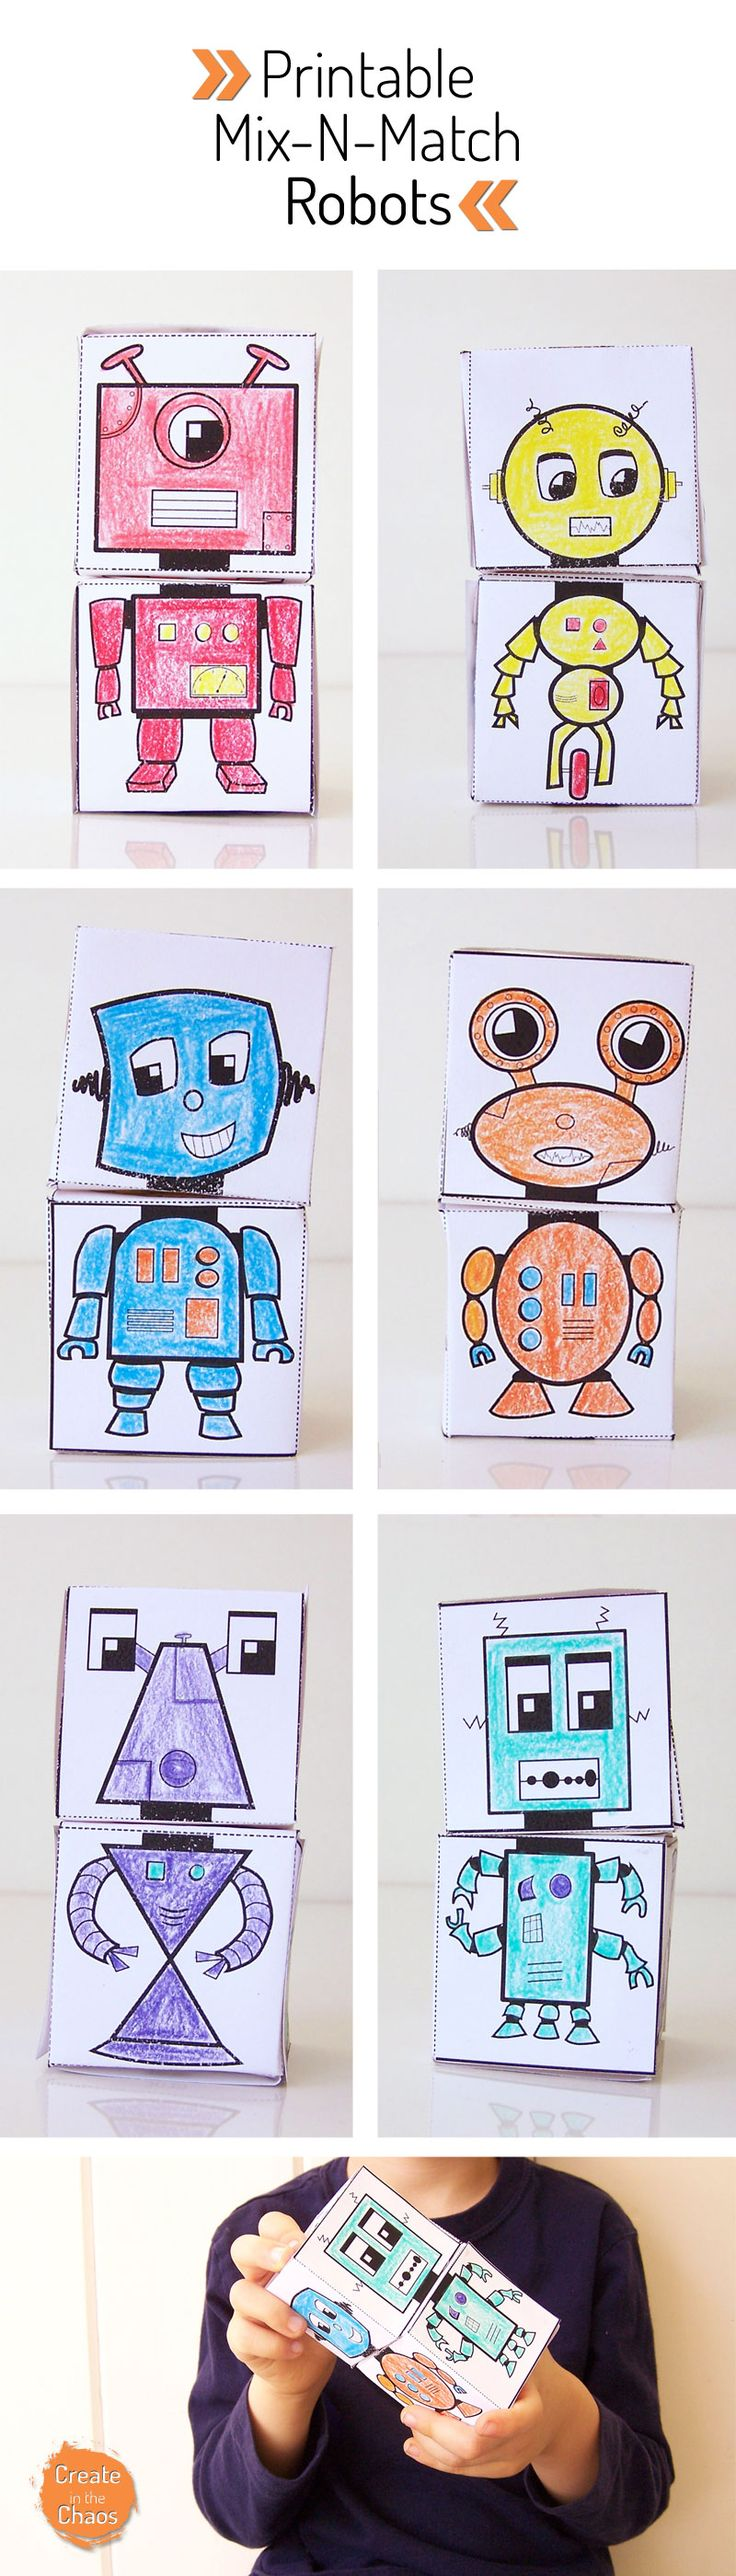 Art Ed Central Loves Free Printable Mix N Match Robot Blocks